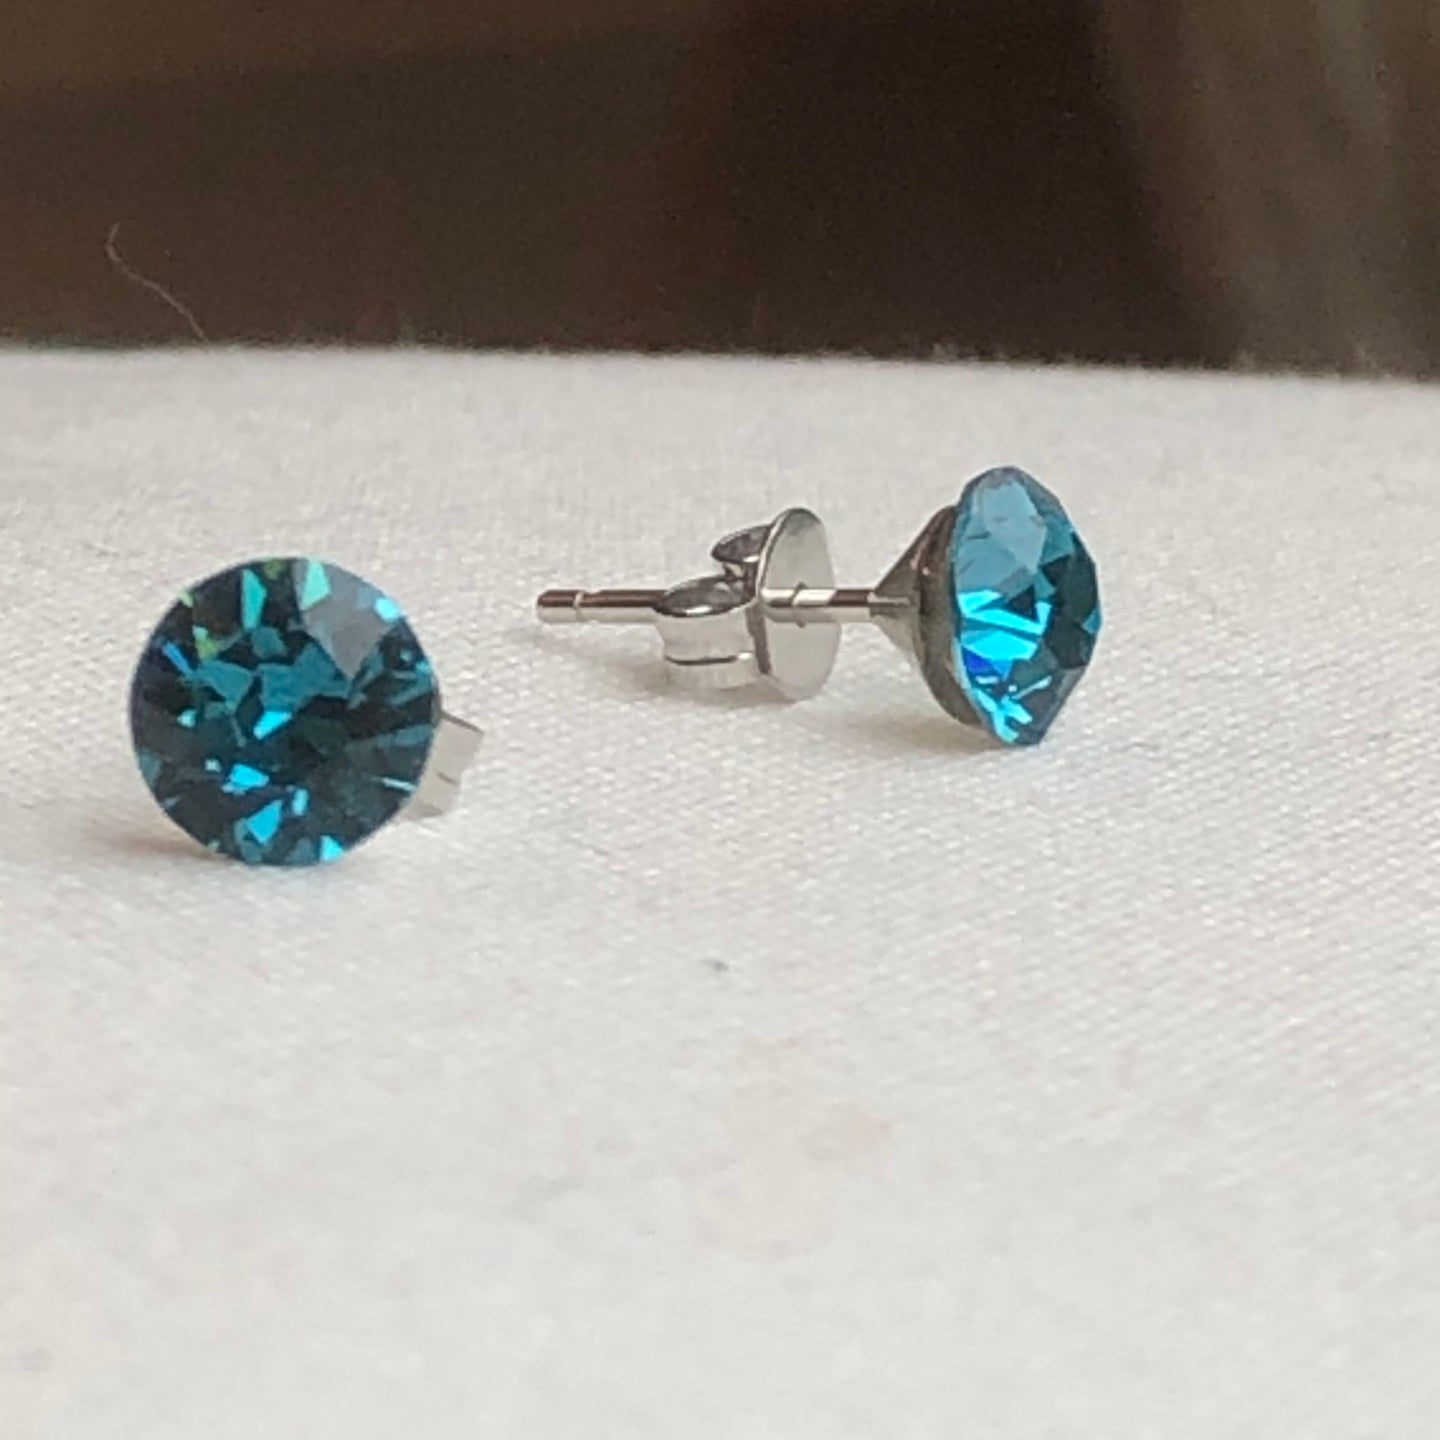 Teal Blue Swarovski Crystal Stud Earrings